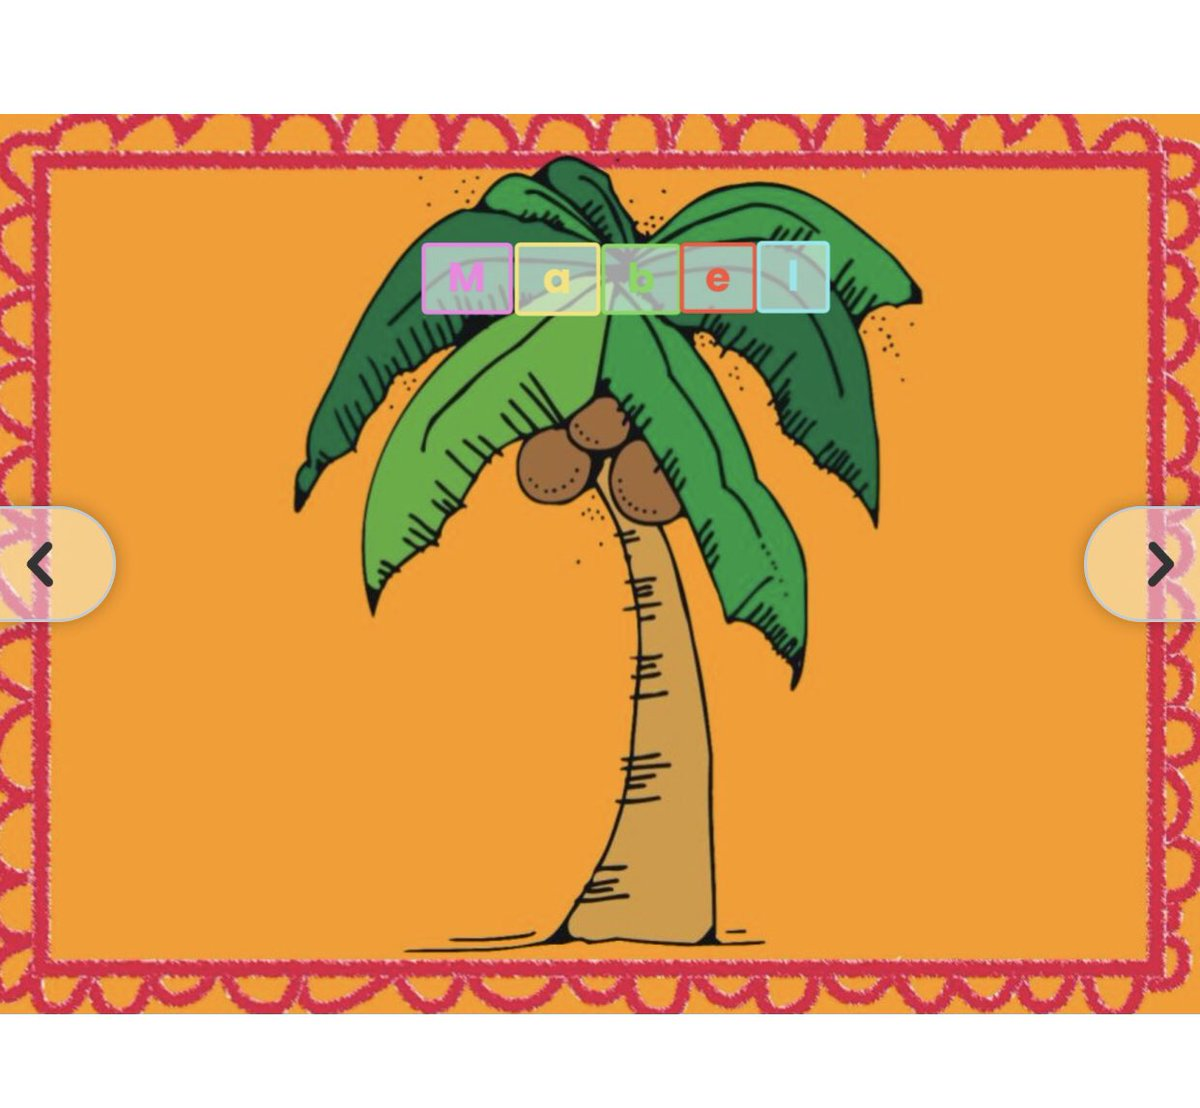 We read Chicka Chicka Boom Boom 🌴 today on our Zoom, then the Ss completed this @Seesaw activity to practice identifying the letters in their names. ☺️ 🥥 https://t.co/5HhCX8eZMA #BPSLearns https://t.co/gg1XekRUXh